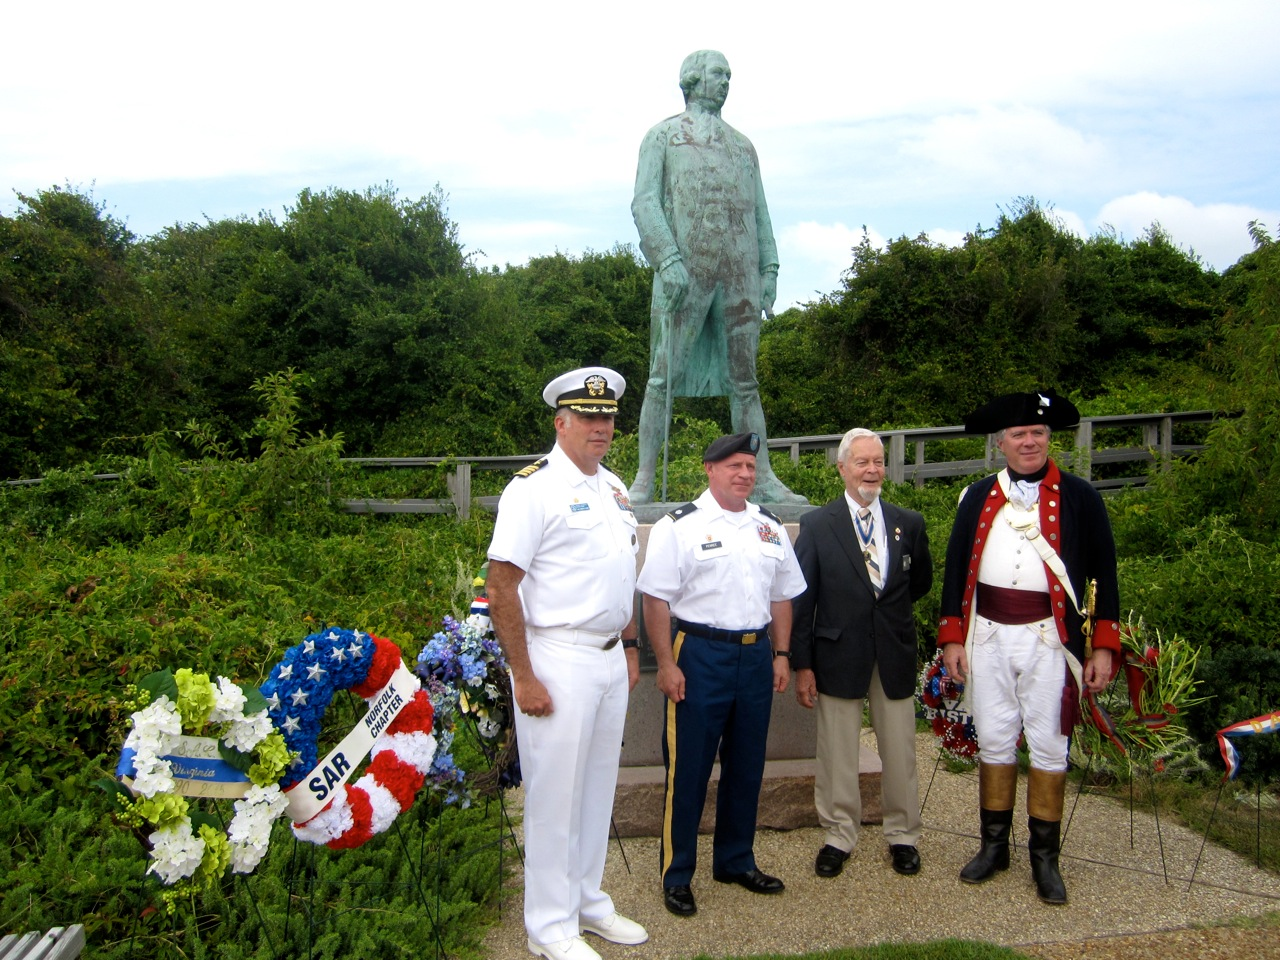 Virginia State SAR President Reverdy Wright, Captain Christopher Melhuish, USN Ret. (in period attire) join in with the Commanding Officer and Executive Officer of Fort Story/Joint Expeditionary Base in front of the Admiral deGrasse Statue